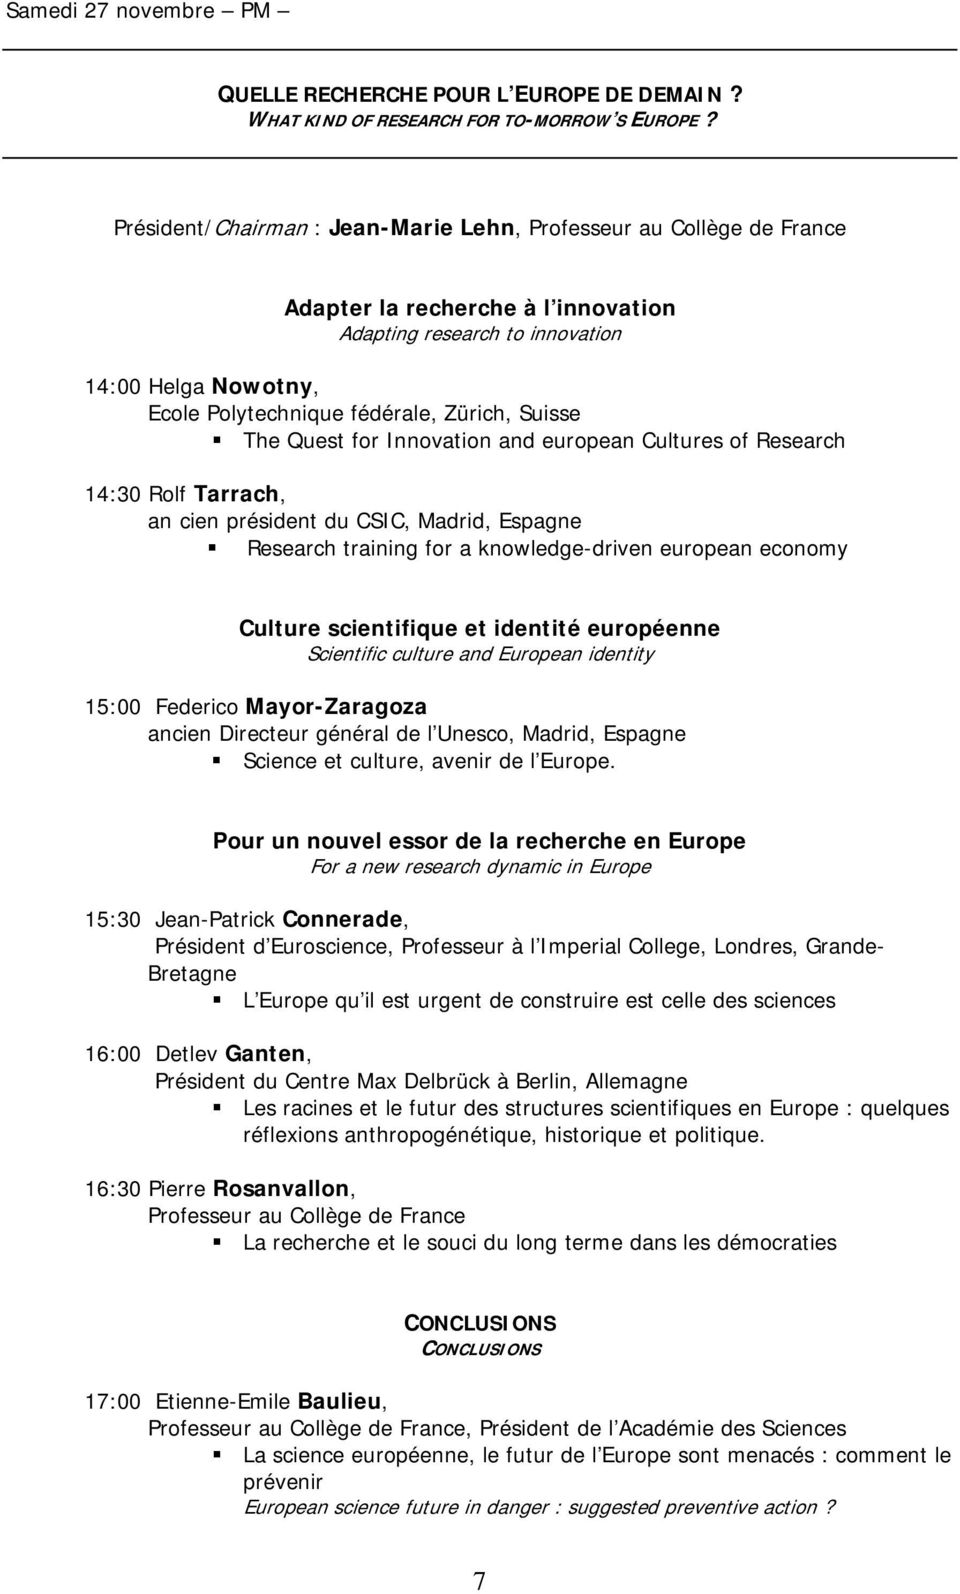 Suisse The Quest for Innovation and european Cultures of Research 14:30 Rolf Tarrach, an cien président du CSIC, Madrid, Espagne Research training for a knowledge-driven european economy Culture